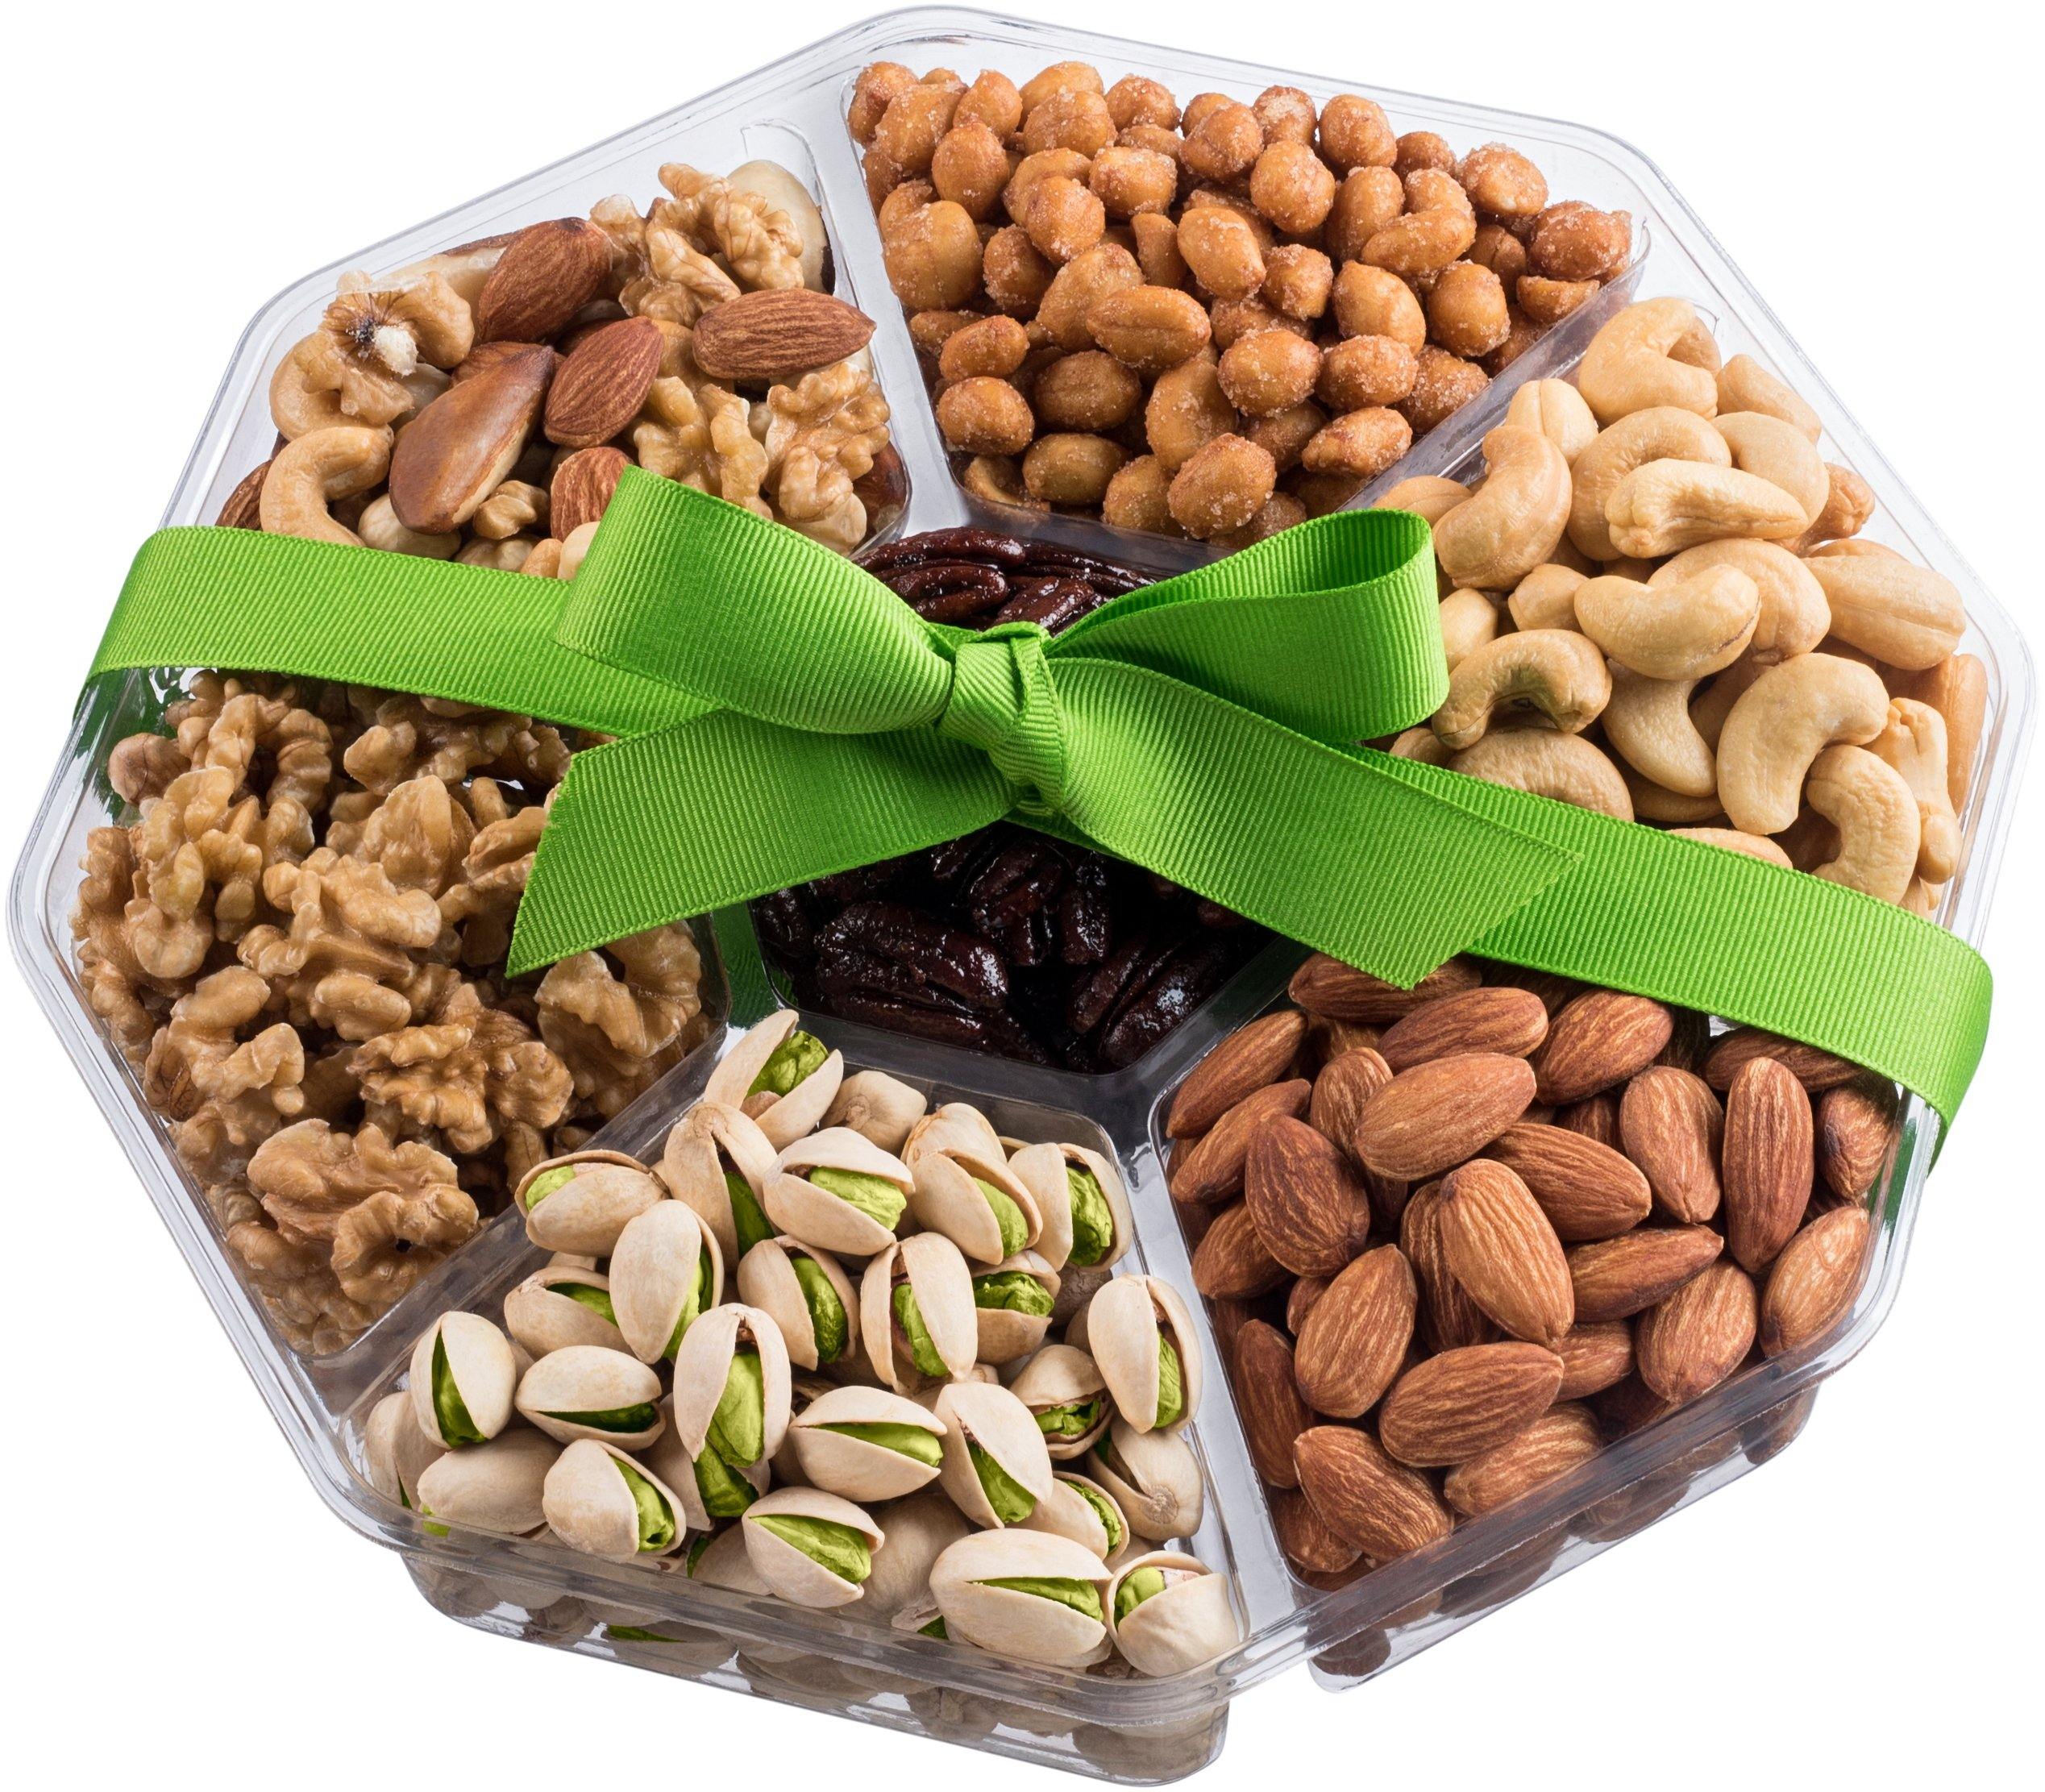 Nut Cravings Holiday Gourmet Nuts Gift Baskets | Large 7-Sectional Delicious Variety Mixed Nuts  sc 1 st  Amazon.com & Gift Baskets for Him: Amazon.com